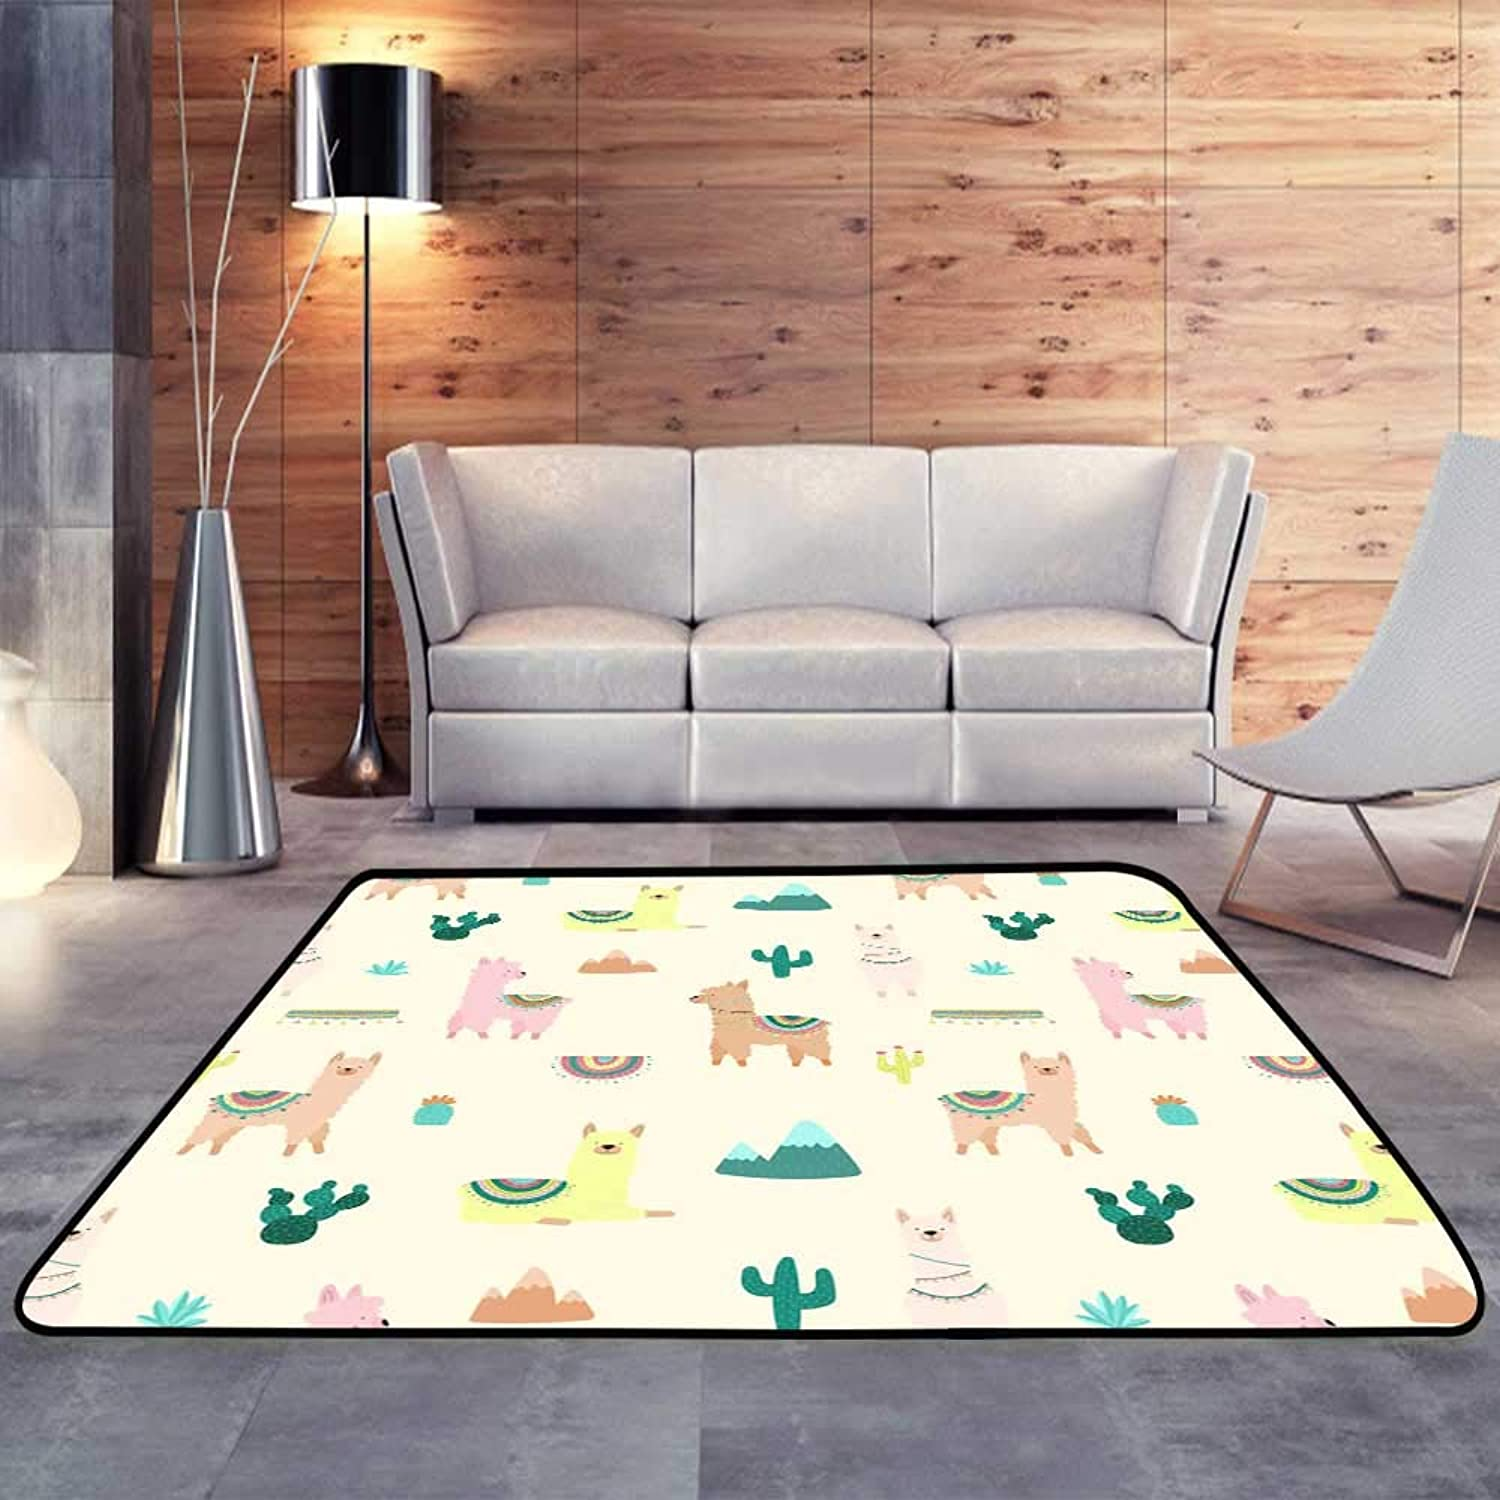 Kids rugsof Cute Multicolord Llamas or Alpacas, Mountains, Cacti on a Light.W 47  x L59 Slip-Resistant Washable Entrance Doormat